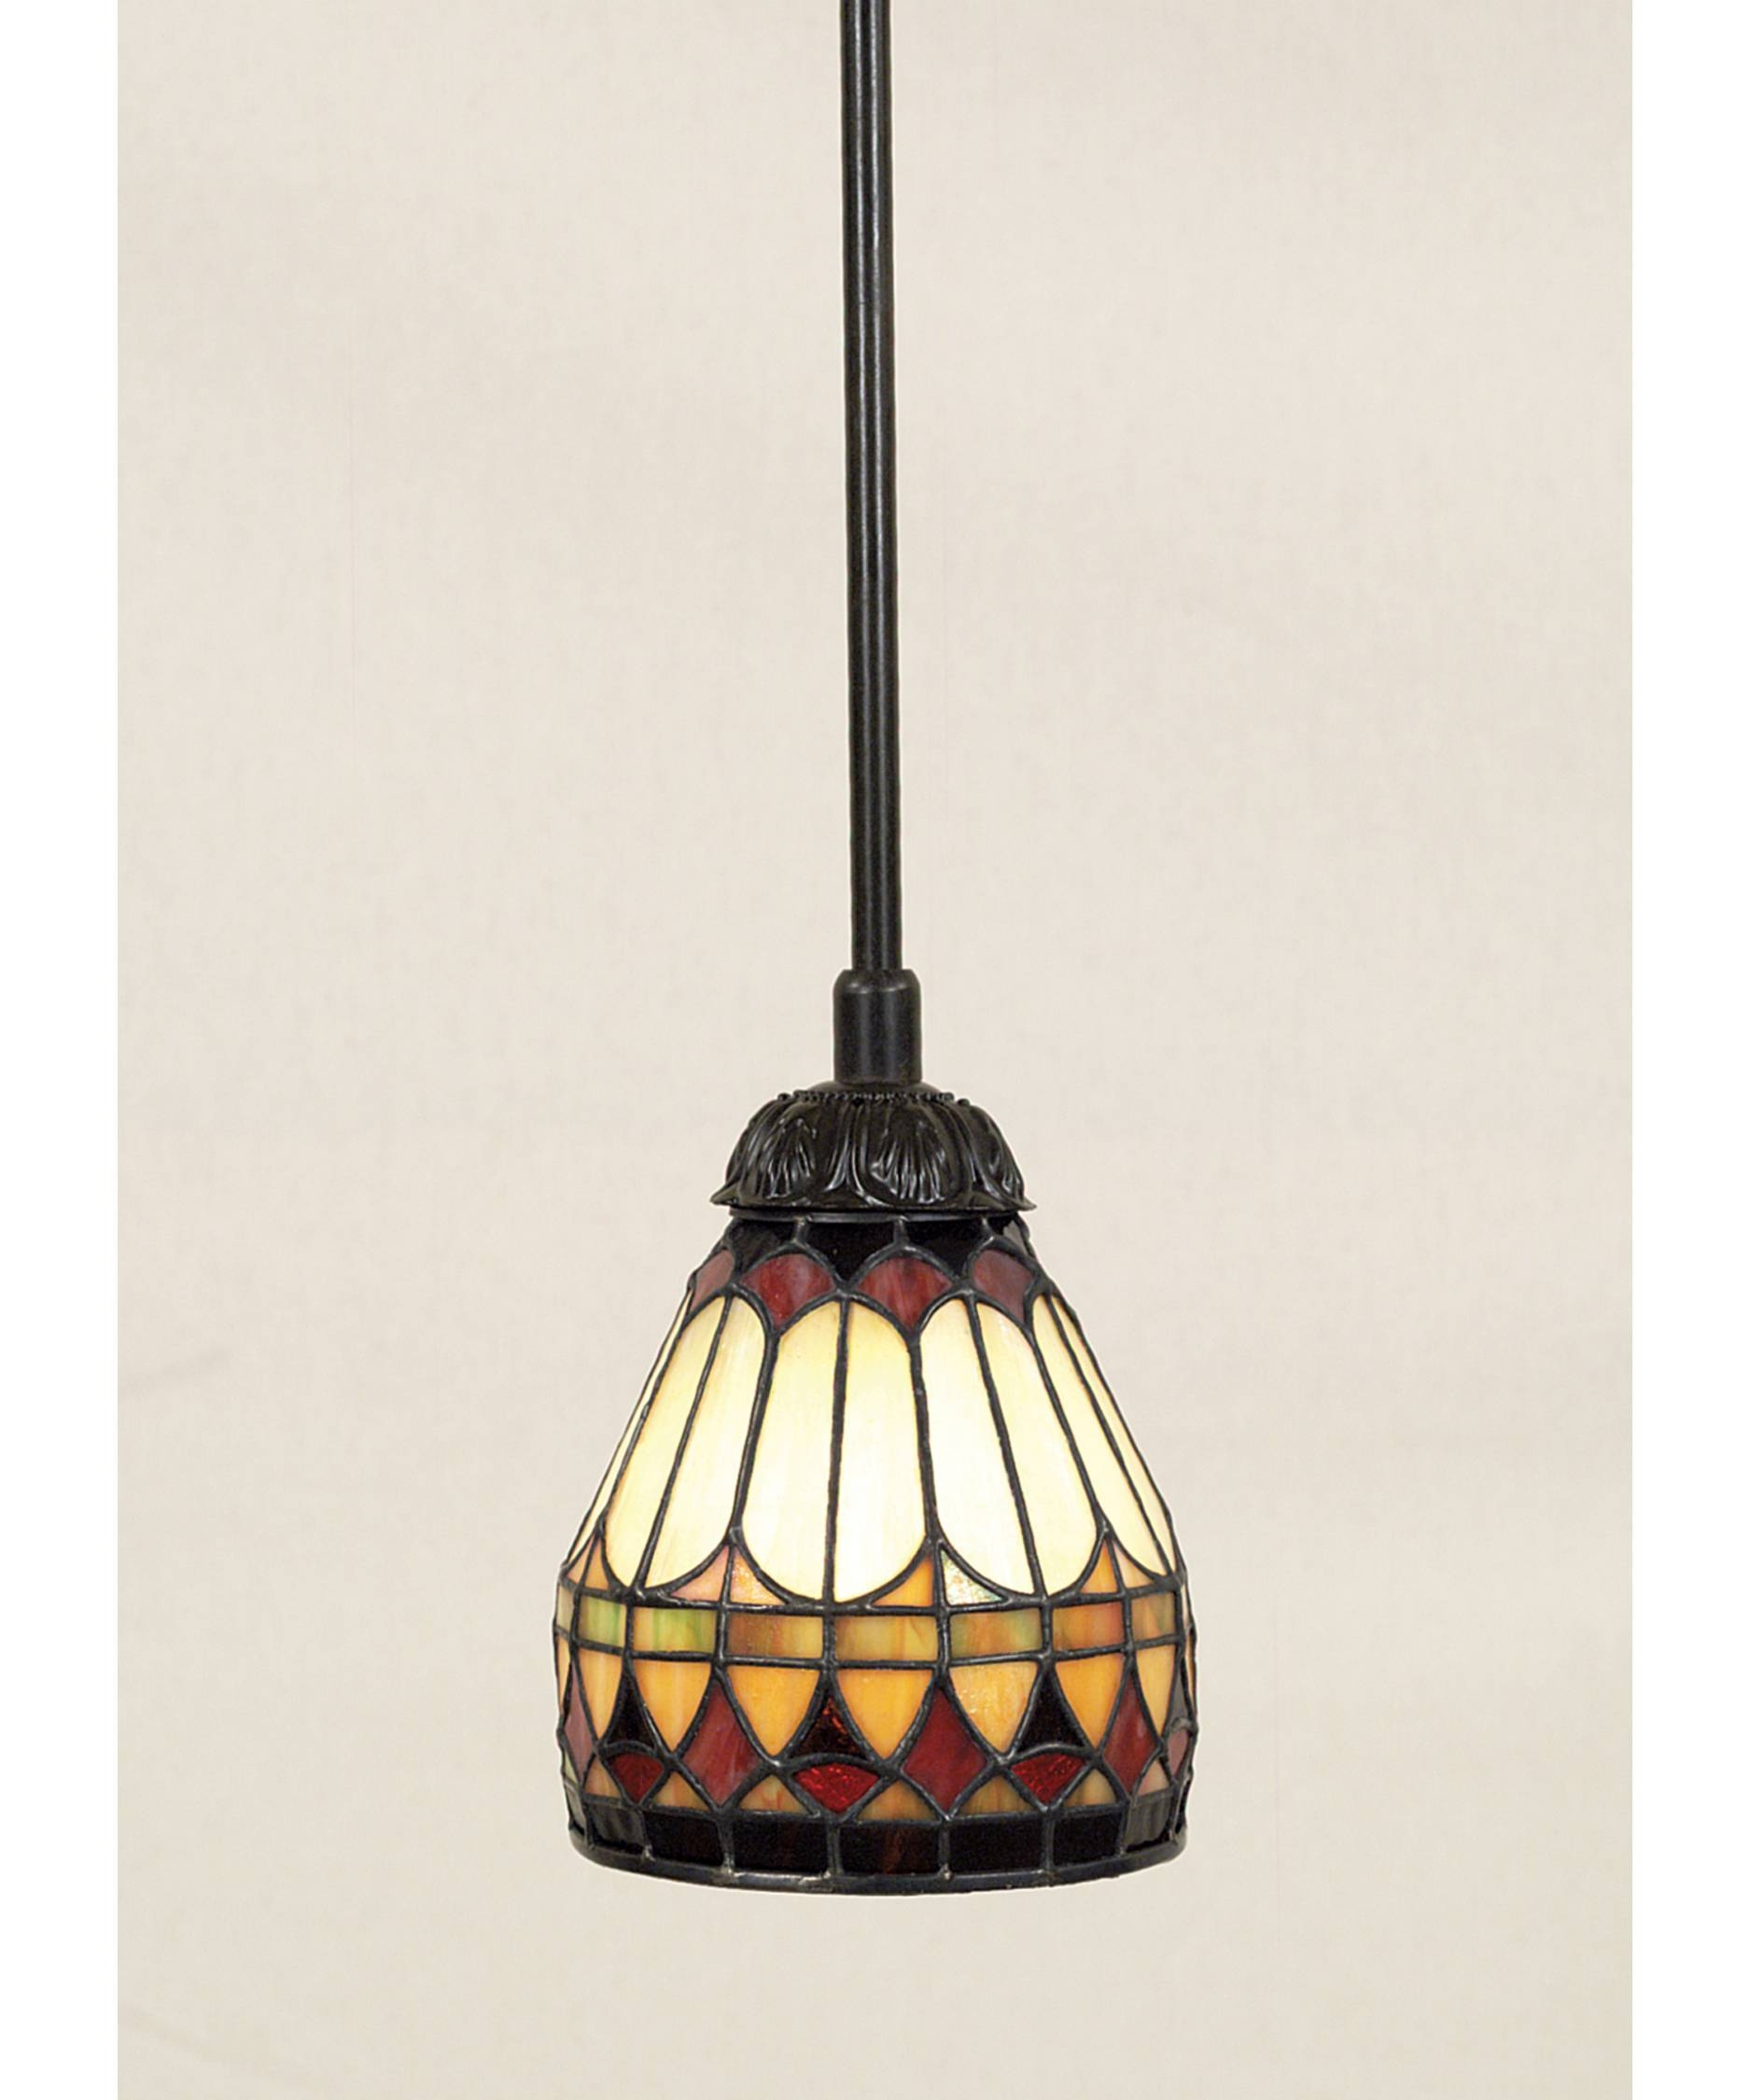 15 Best Collection of Tiffany Pendant Light Fixtures